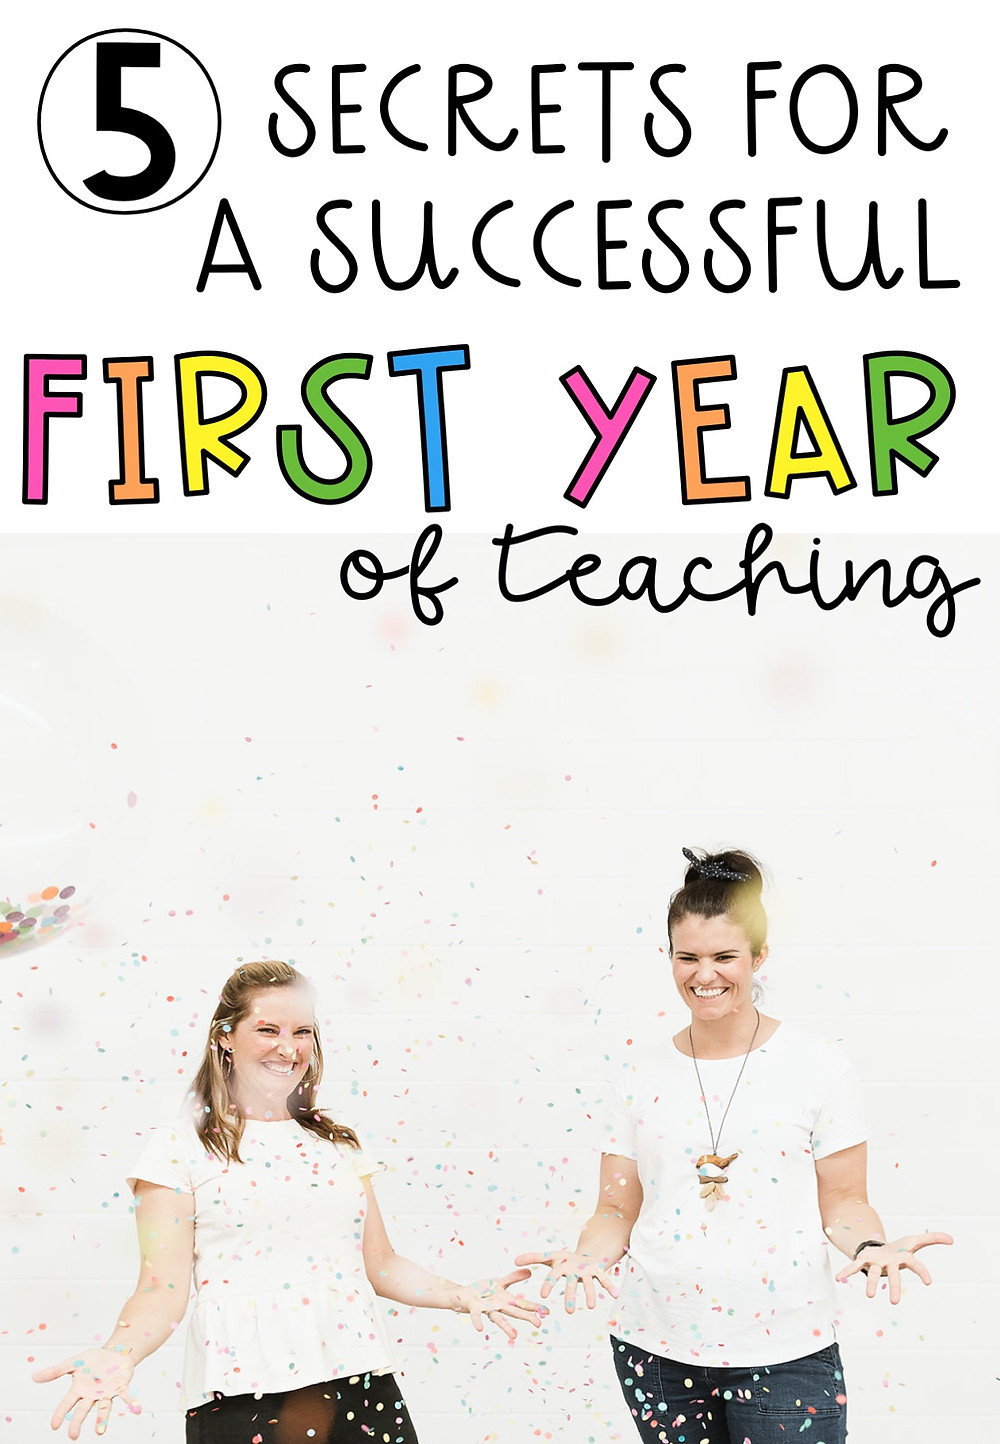 5-secrets-for-a-successful-first-year-of-teaching